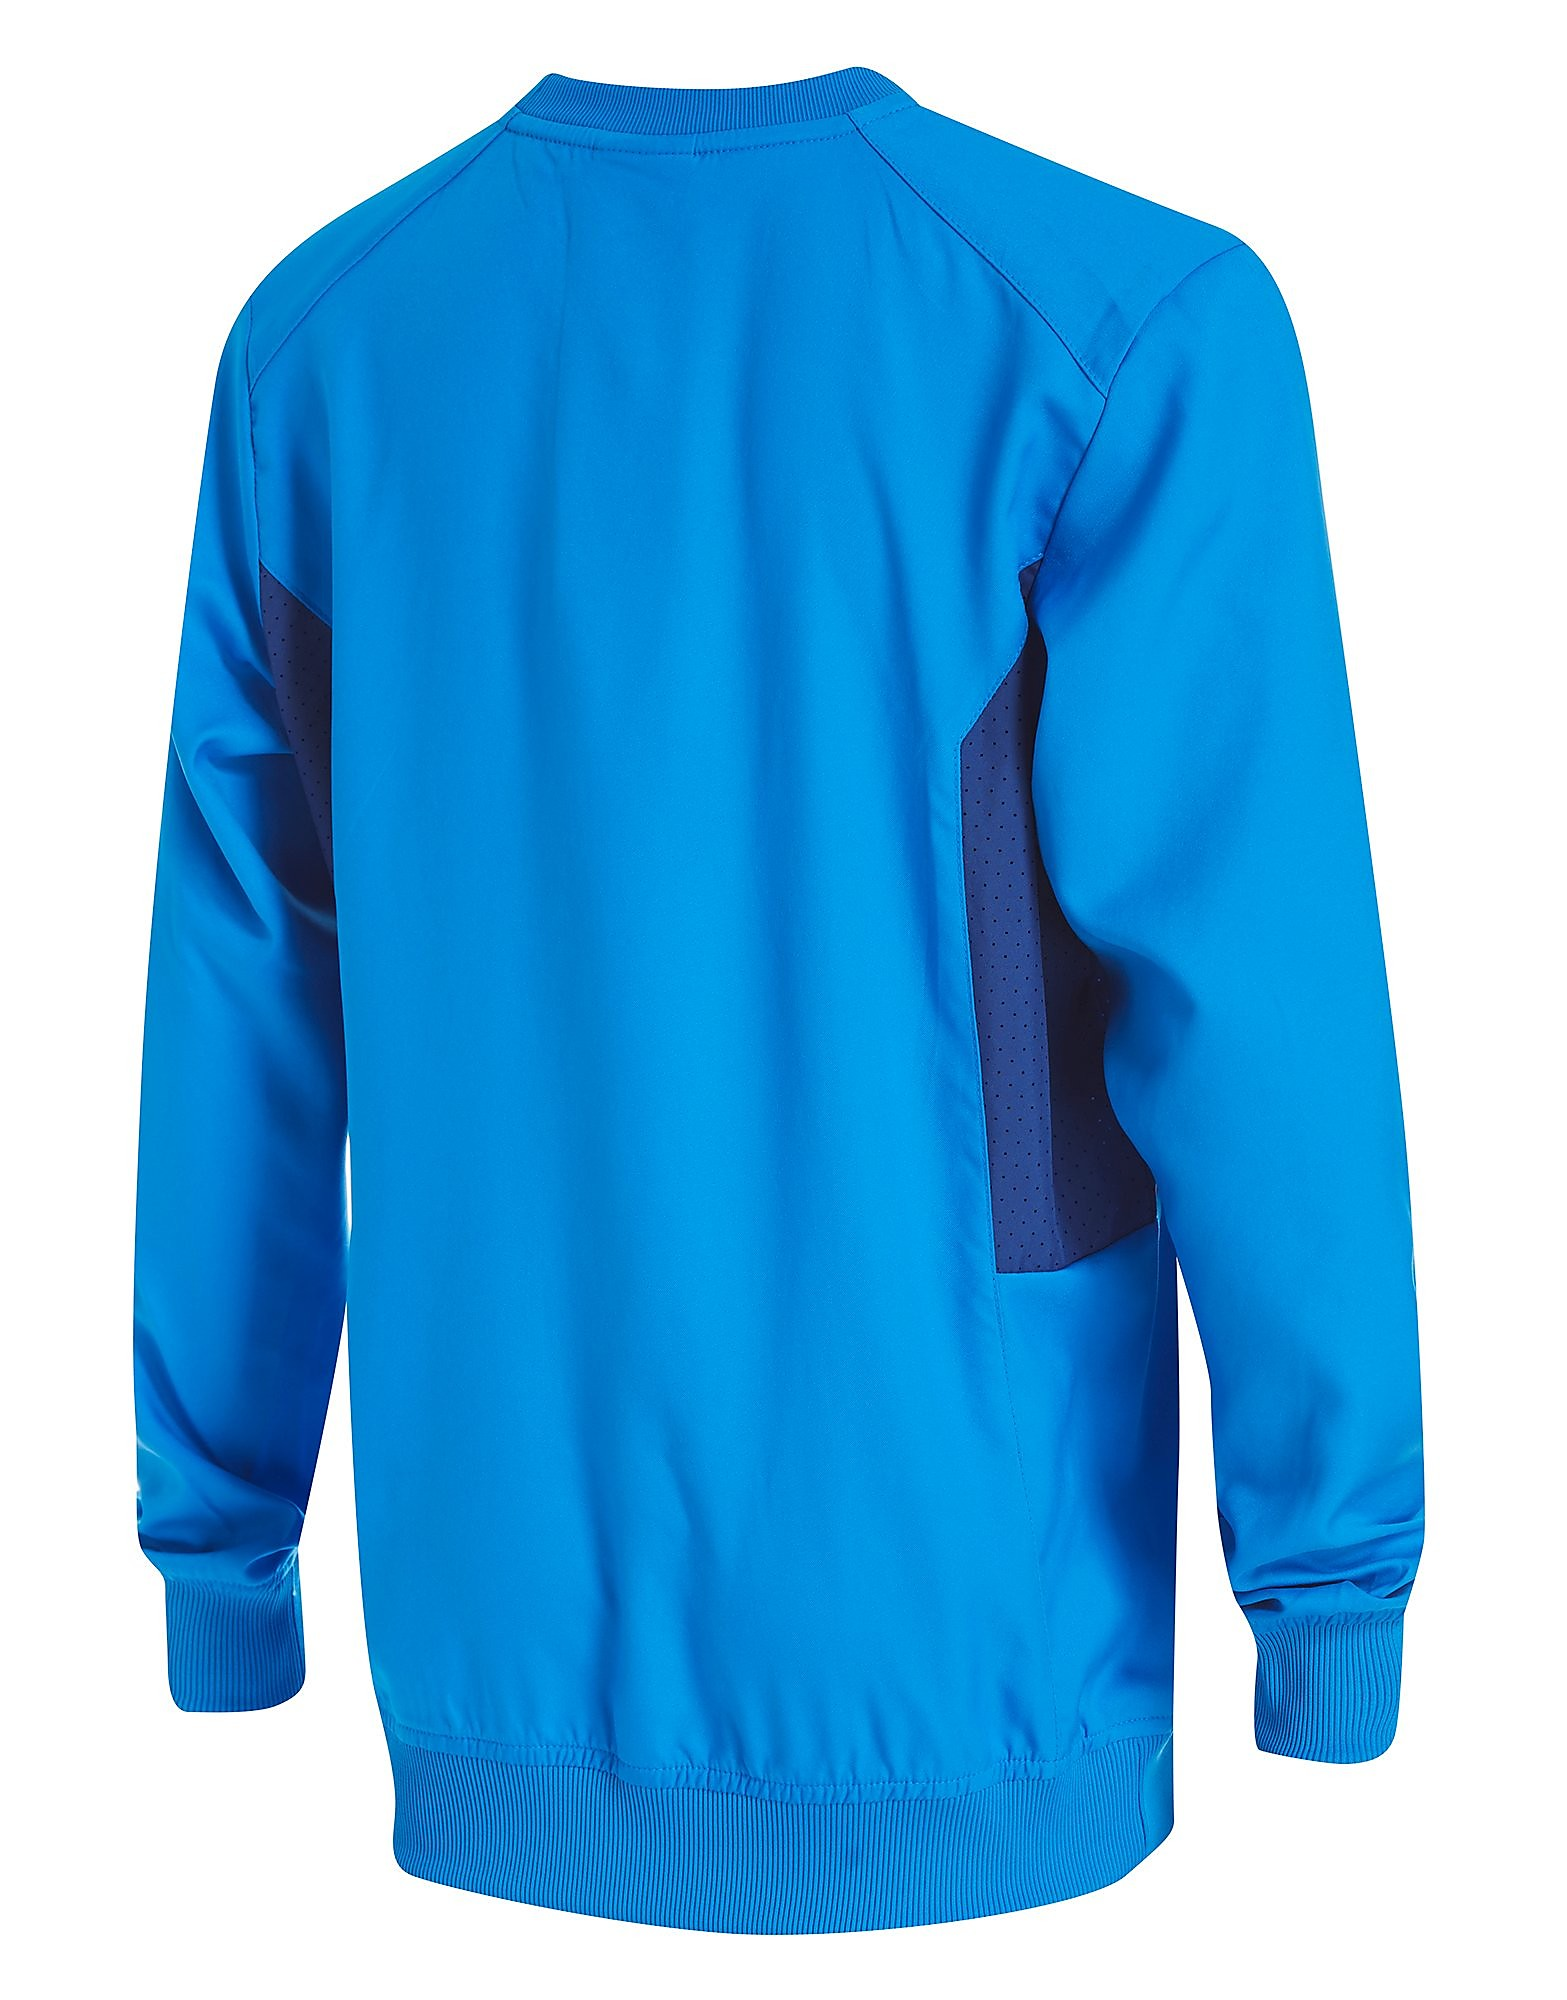 Umbro Everton FC Drill Top Junior